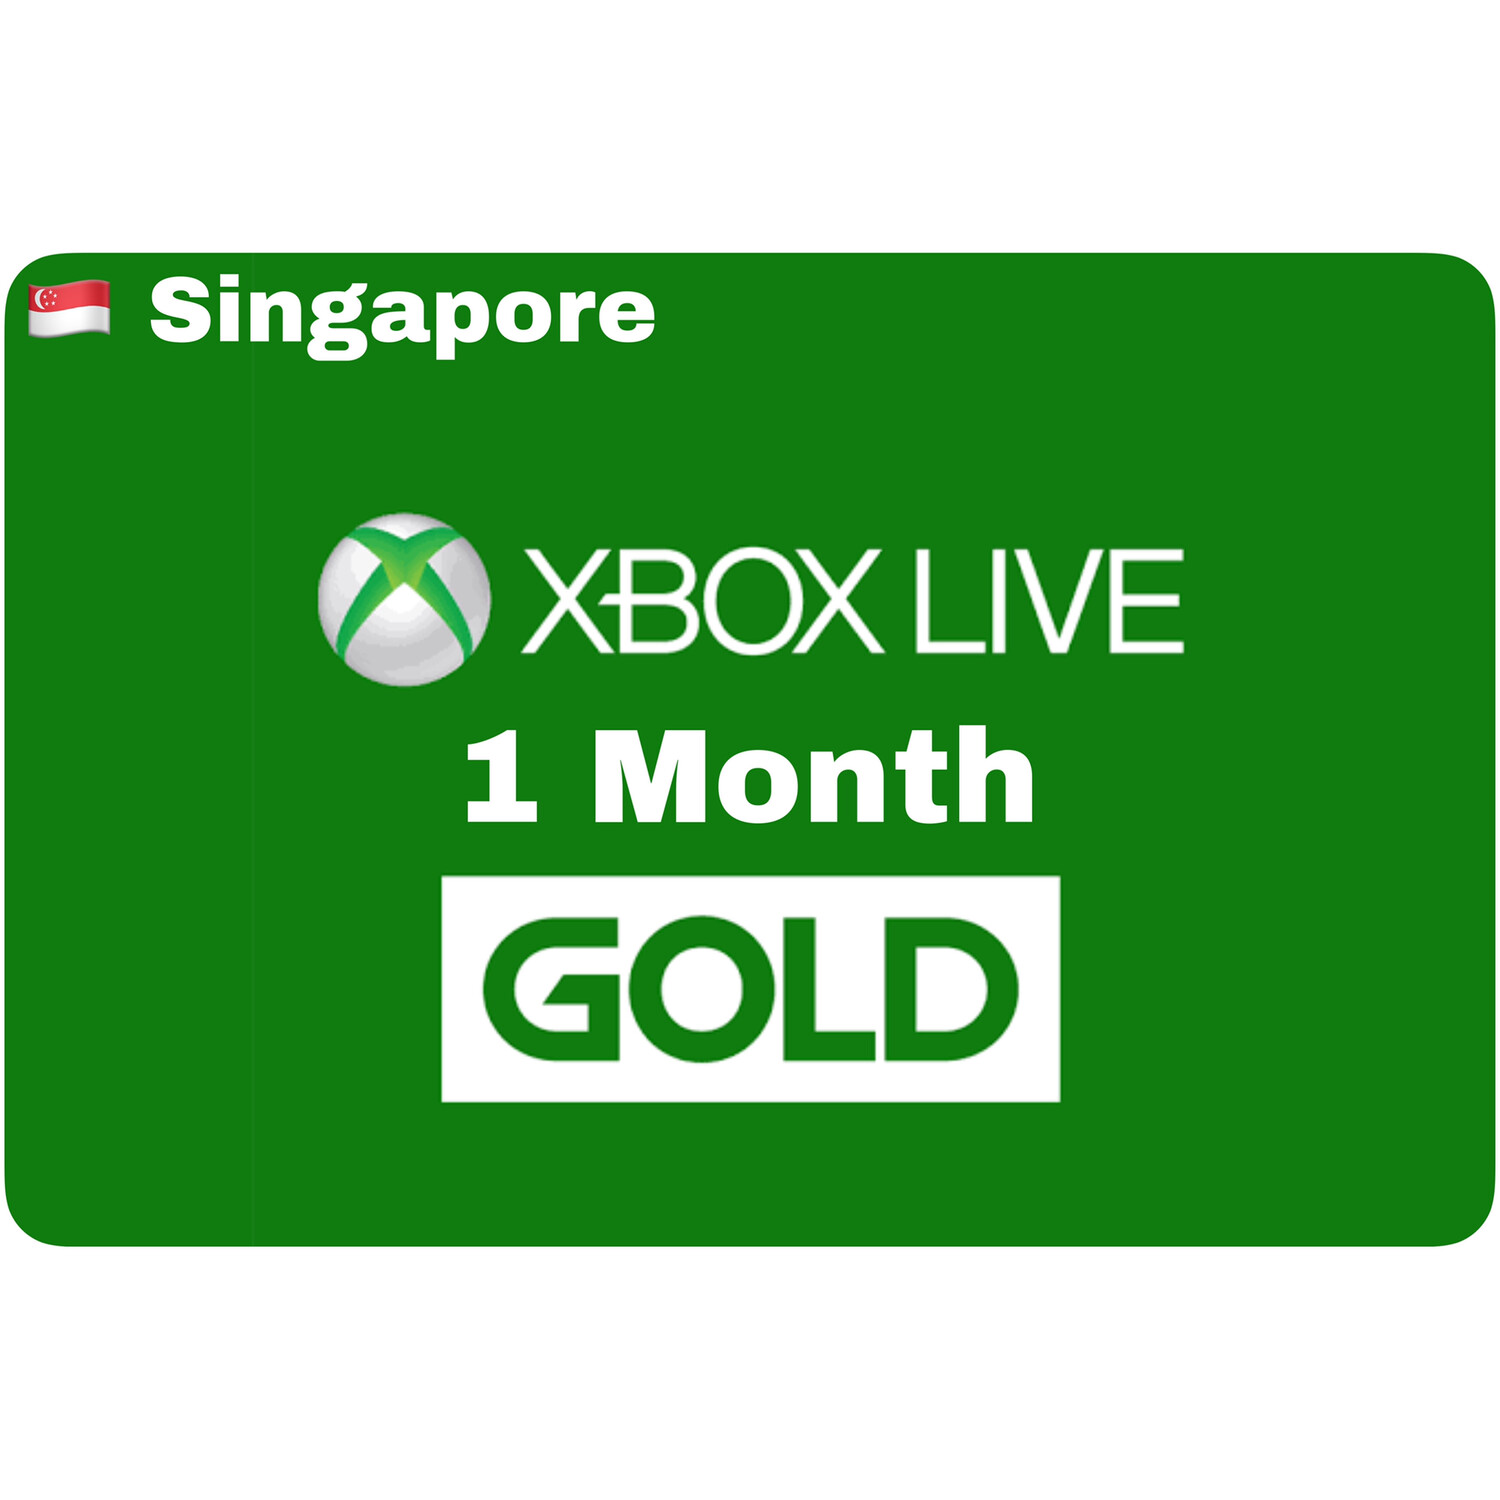 Xbox Live 1 Month Gold Singapore